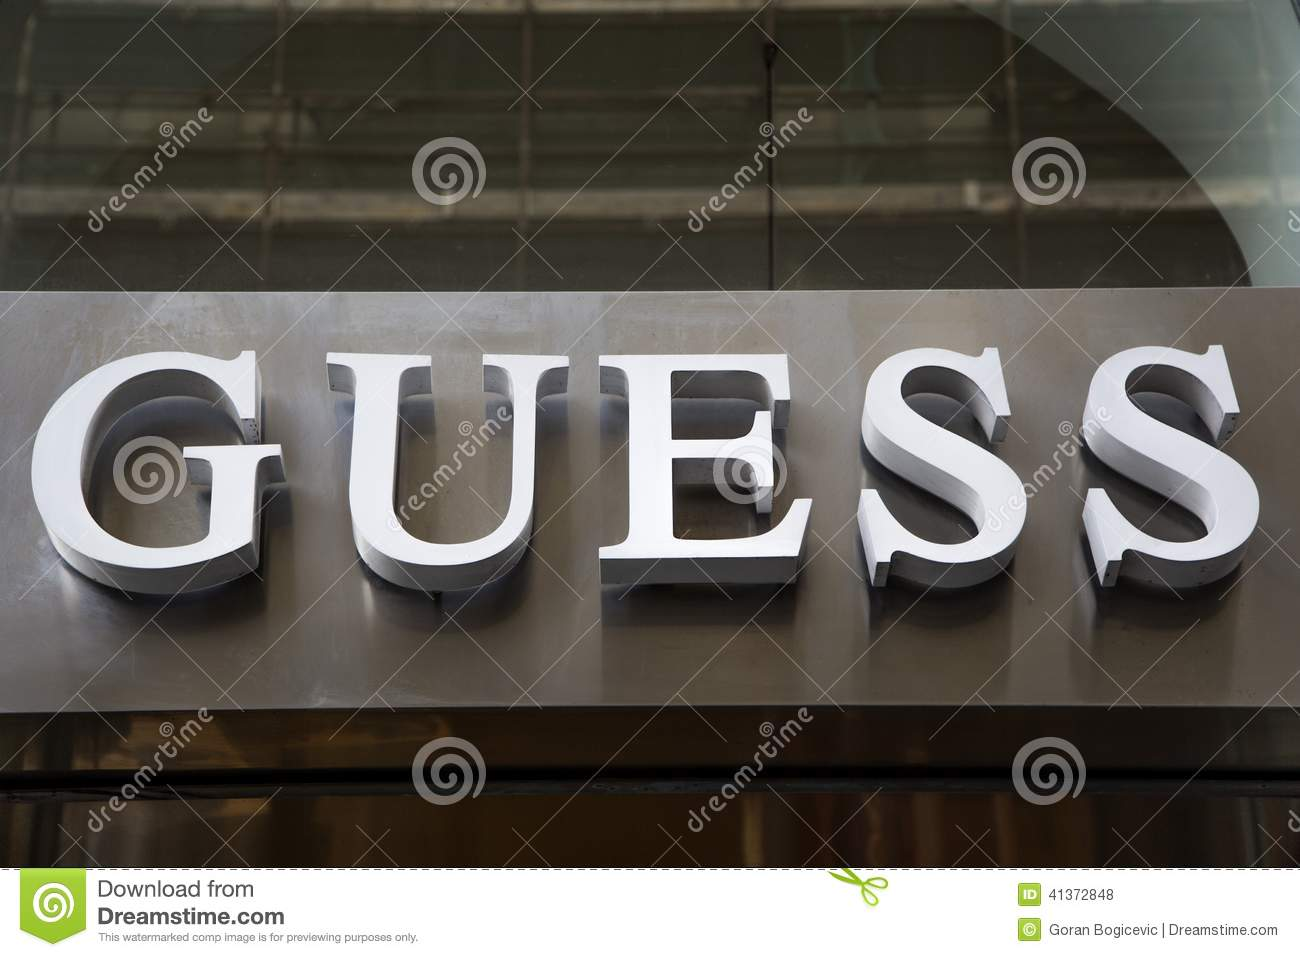 Women clothing stores. Guess clothing store locations